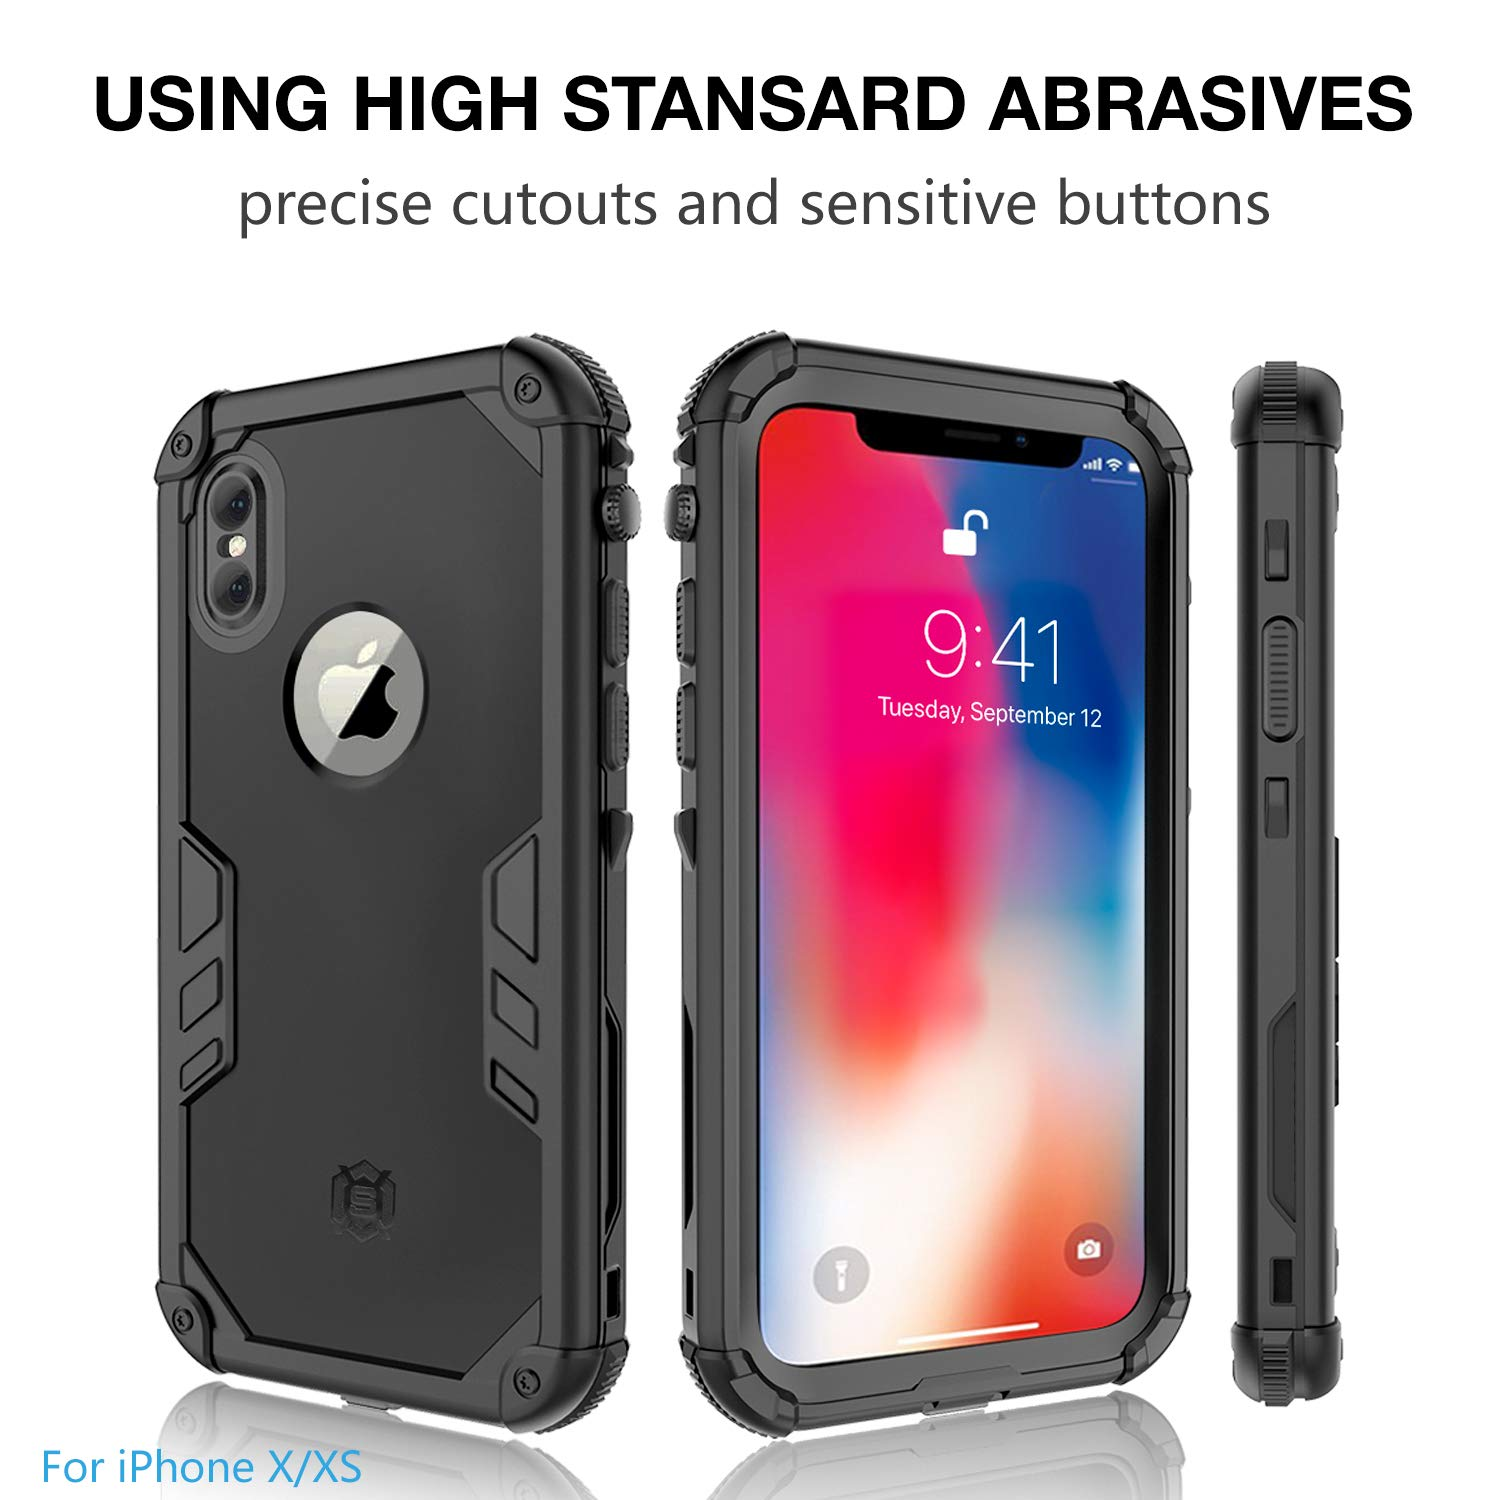 huge selection of 20e46 fa595 Meritcase iPhone X/Xs Waterproof Case, iPhone X Full Protection IP 68 15M  Underwater 3M Dropproof Snowproof Dirtyproof Dustproof Heavy Duty Rugged ...